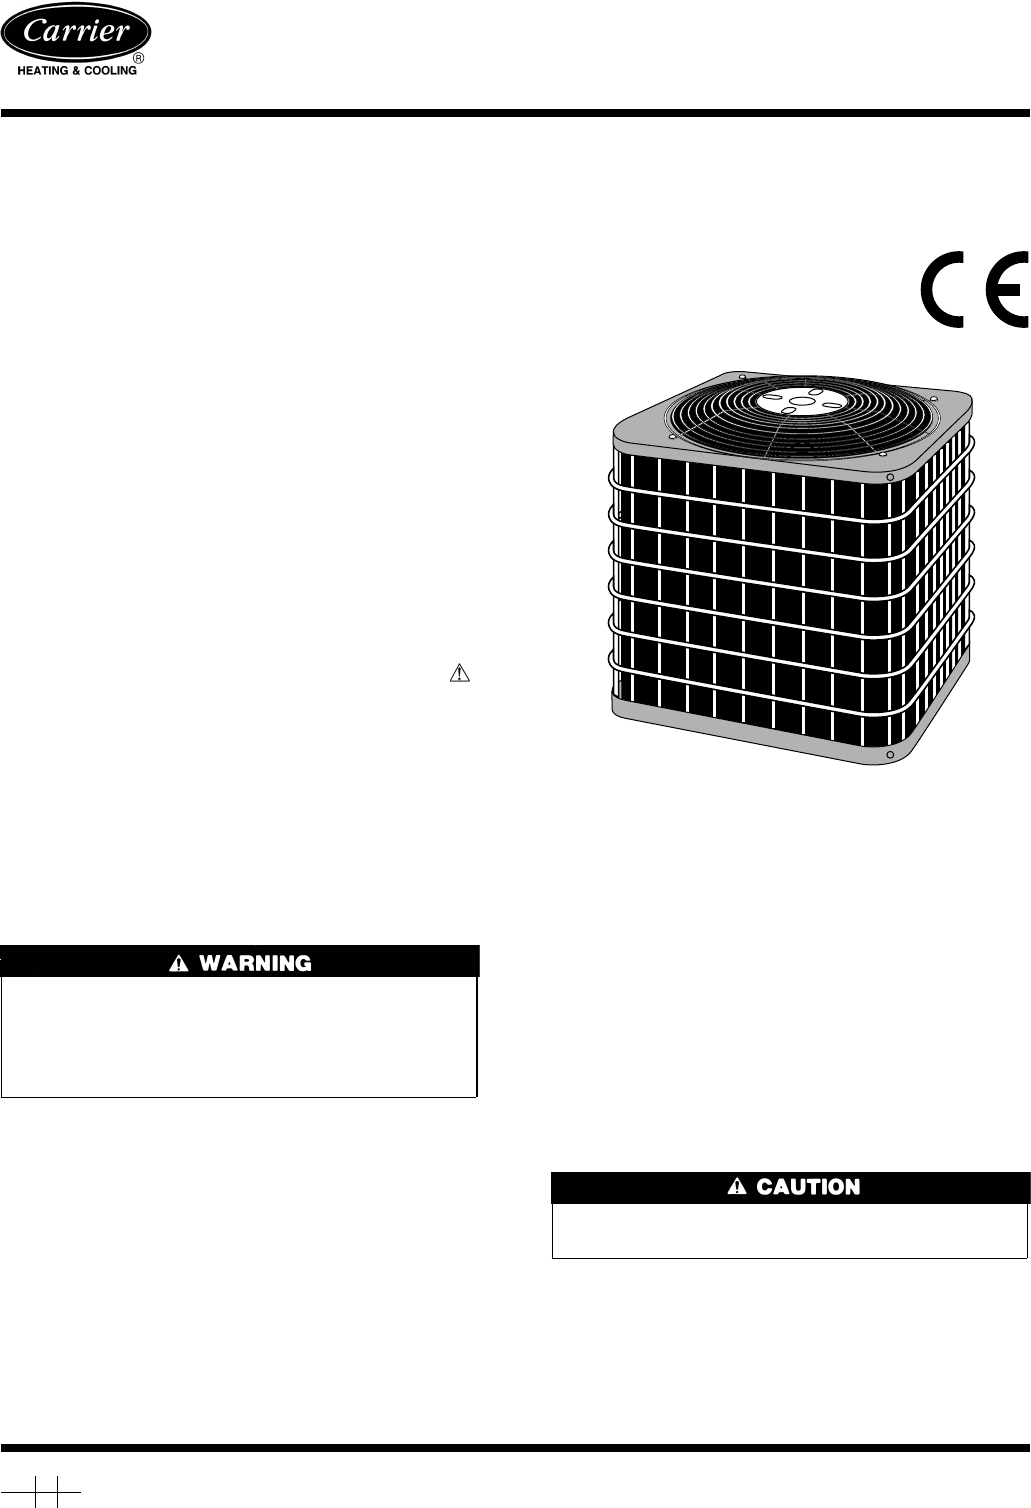 carrier heat pump 38ycx user guide manualsonline com rh homeappliance manualsonline com Heat Pump Ratings by Brand Carrier Heat Pump Package